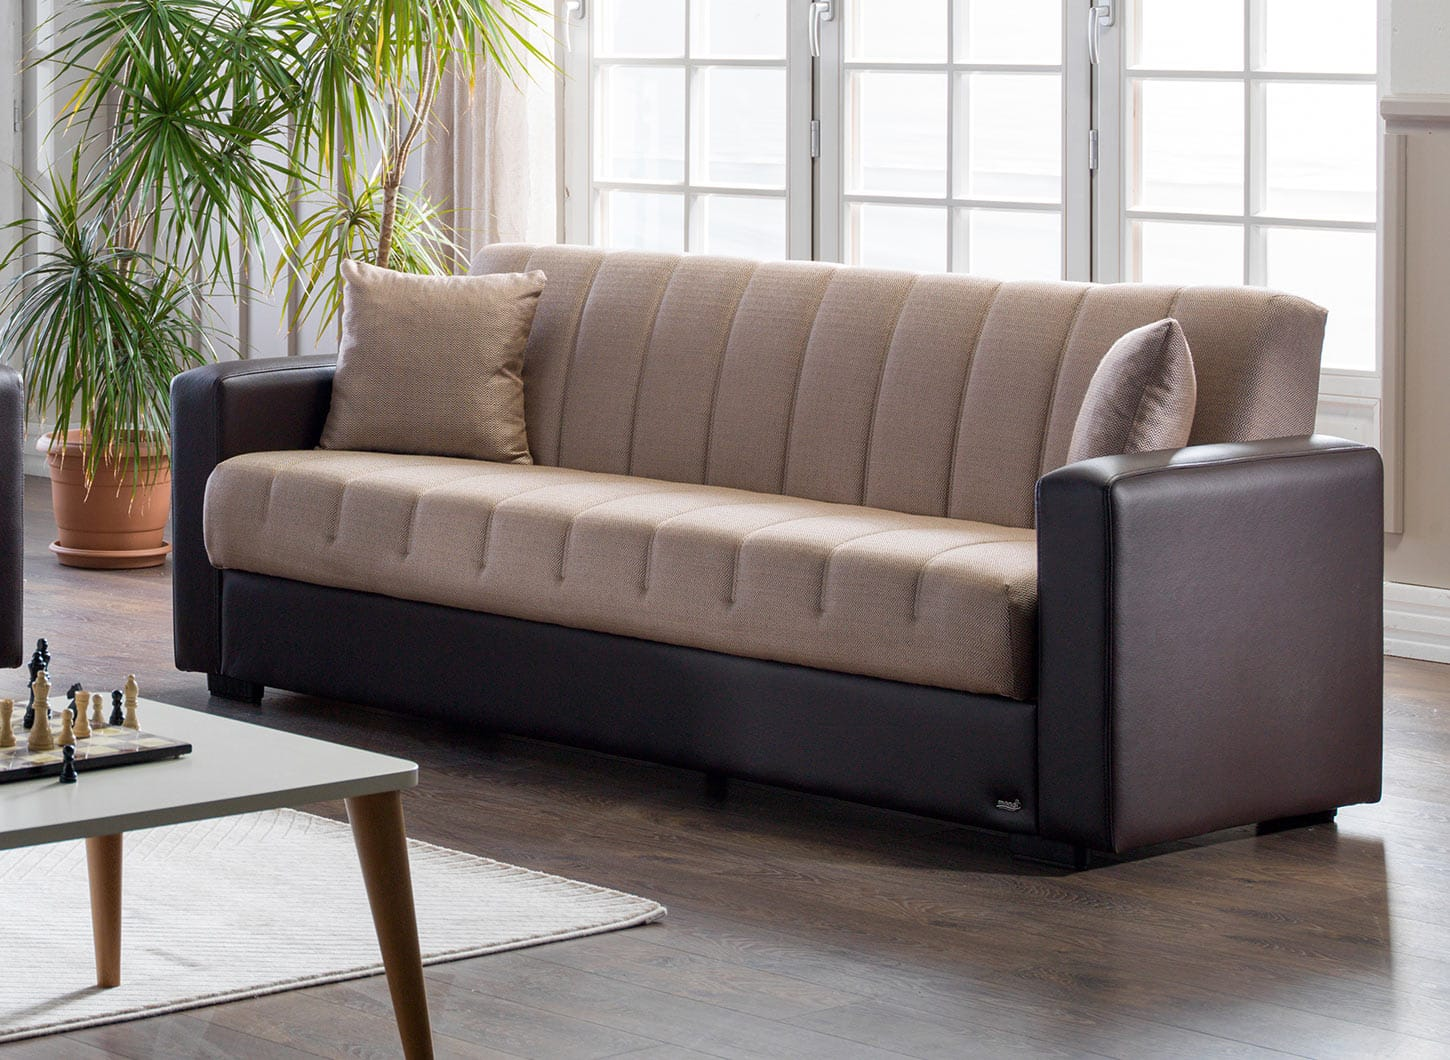 Sidney Bolzoni Beige Convertible Sofa Bed By Istikbal Furniture